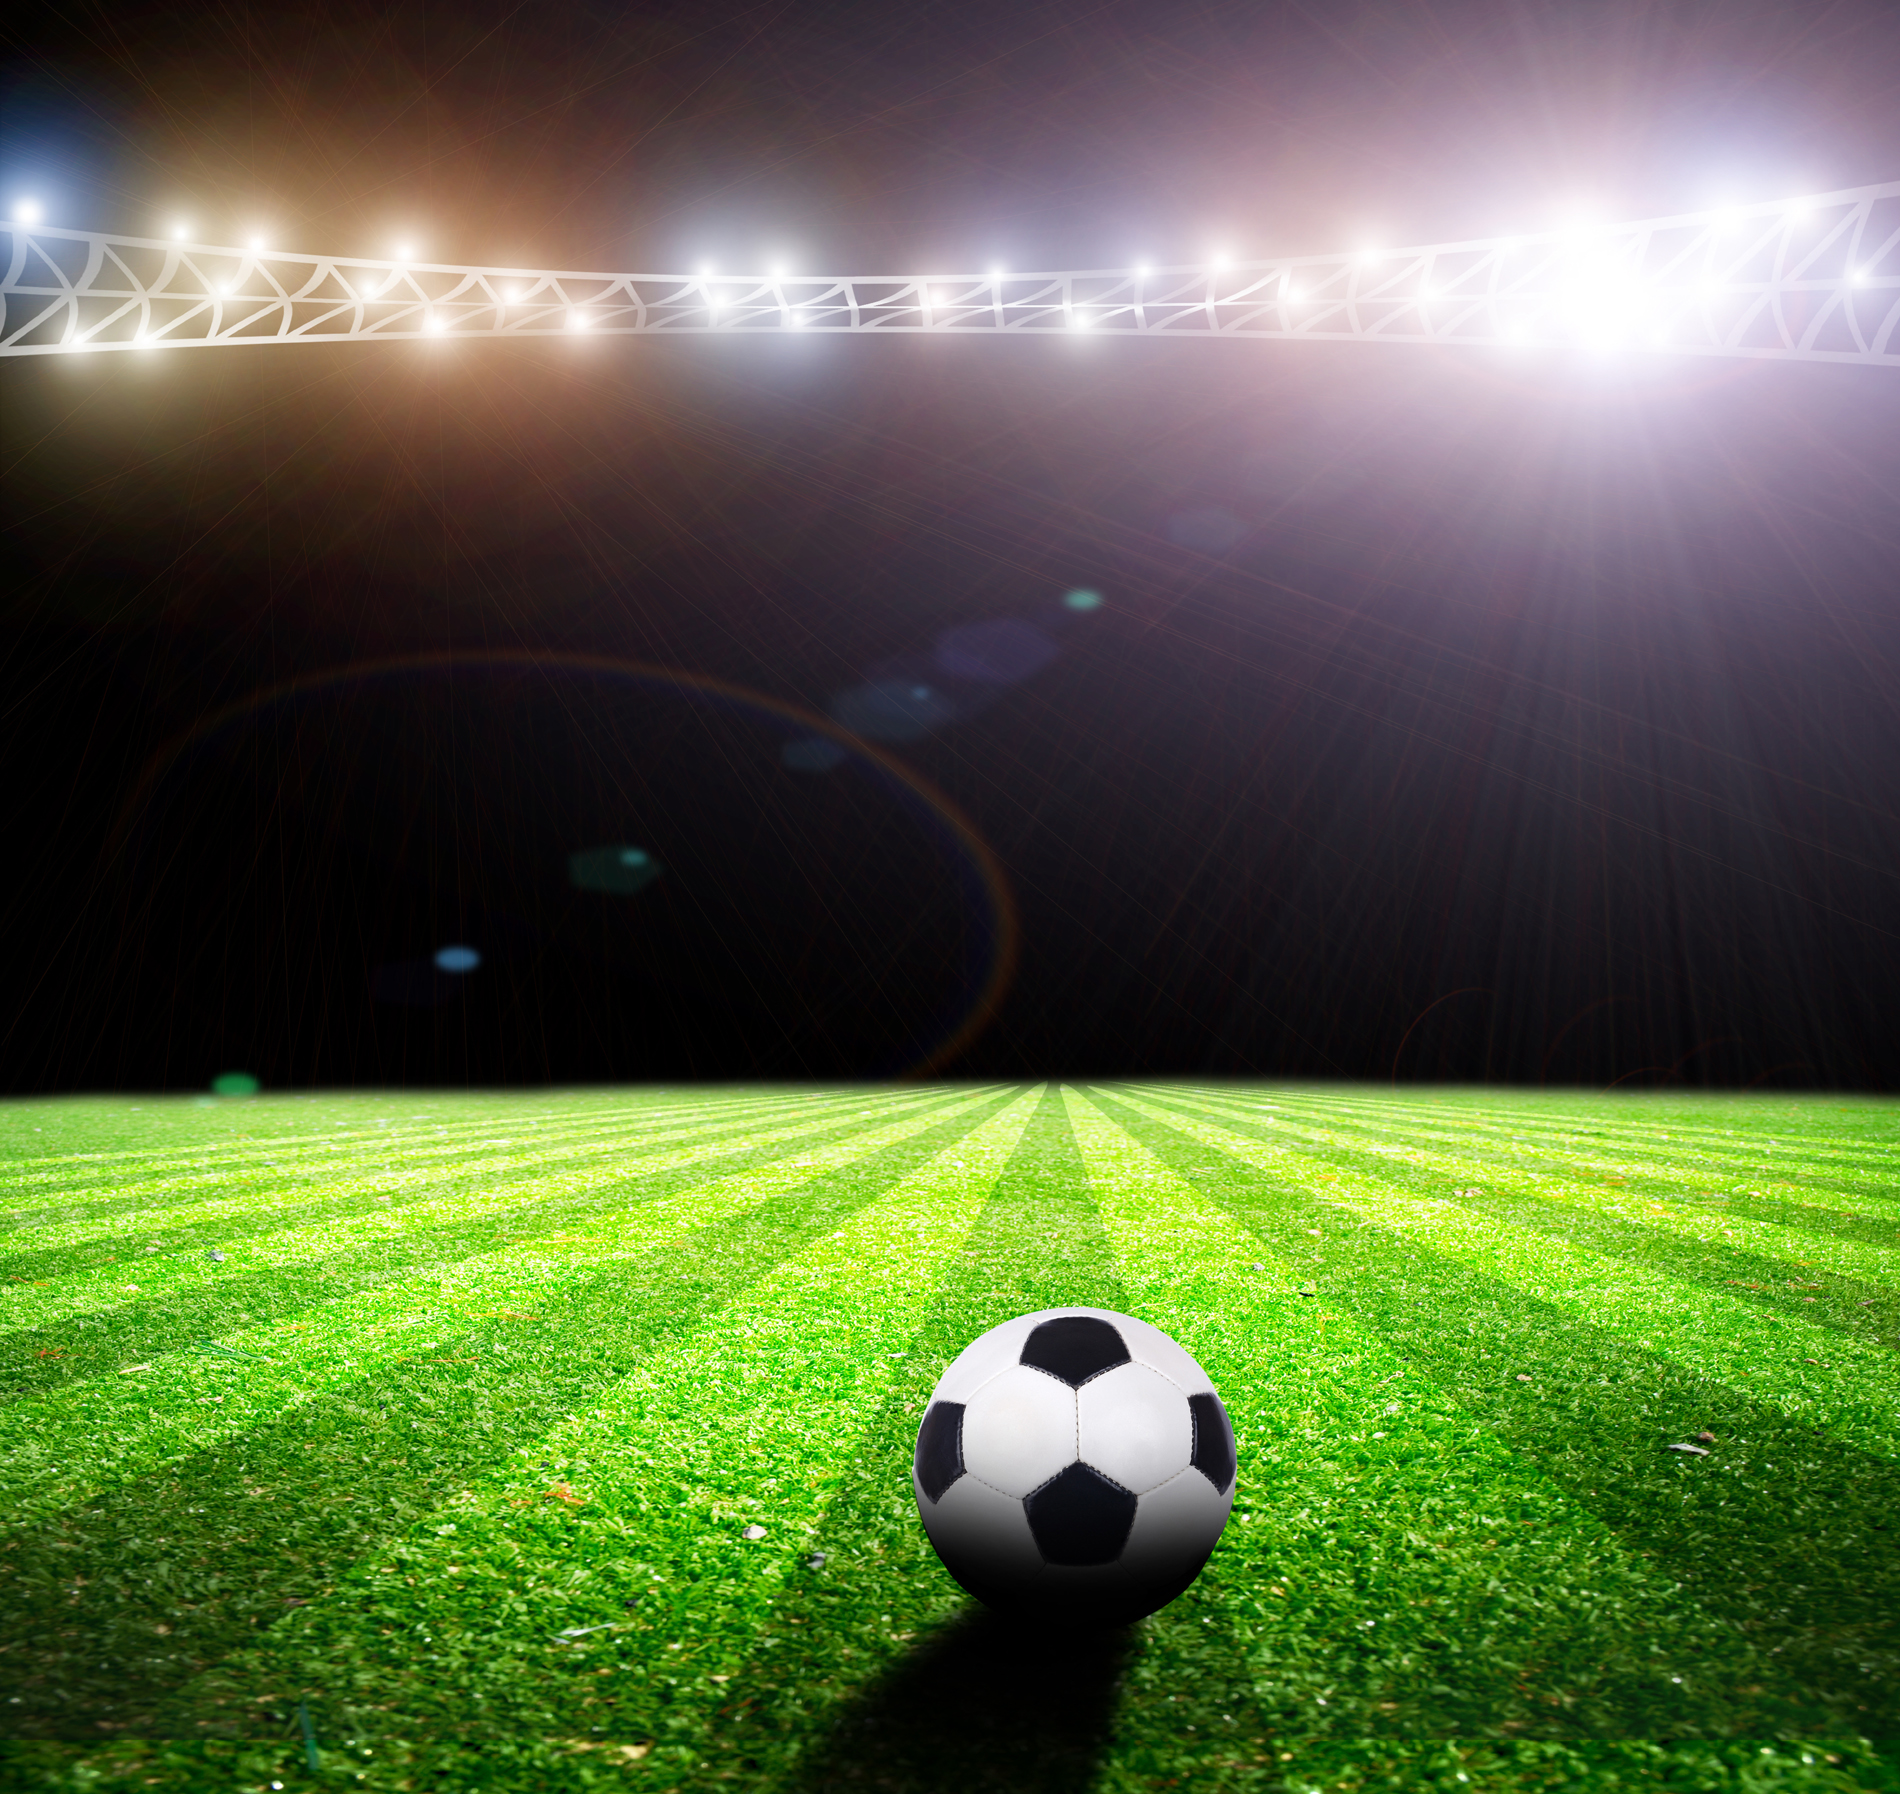 Display of football pitch 52935